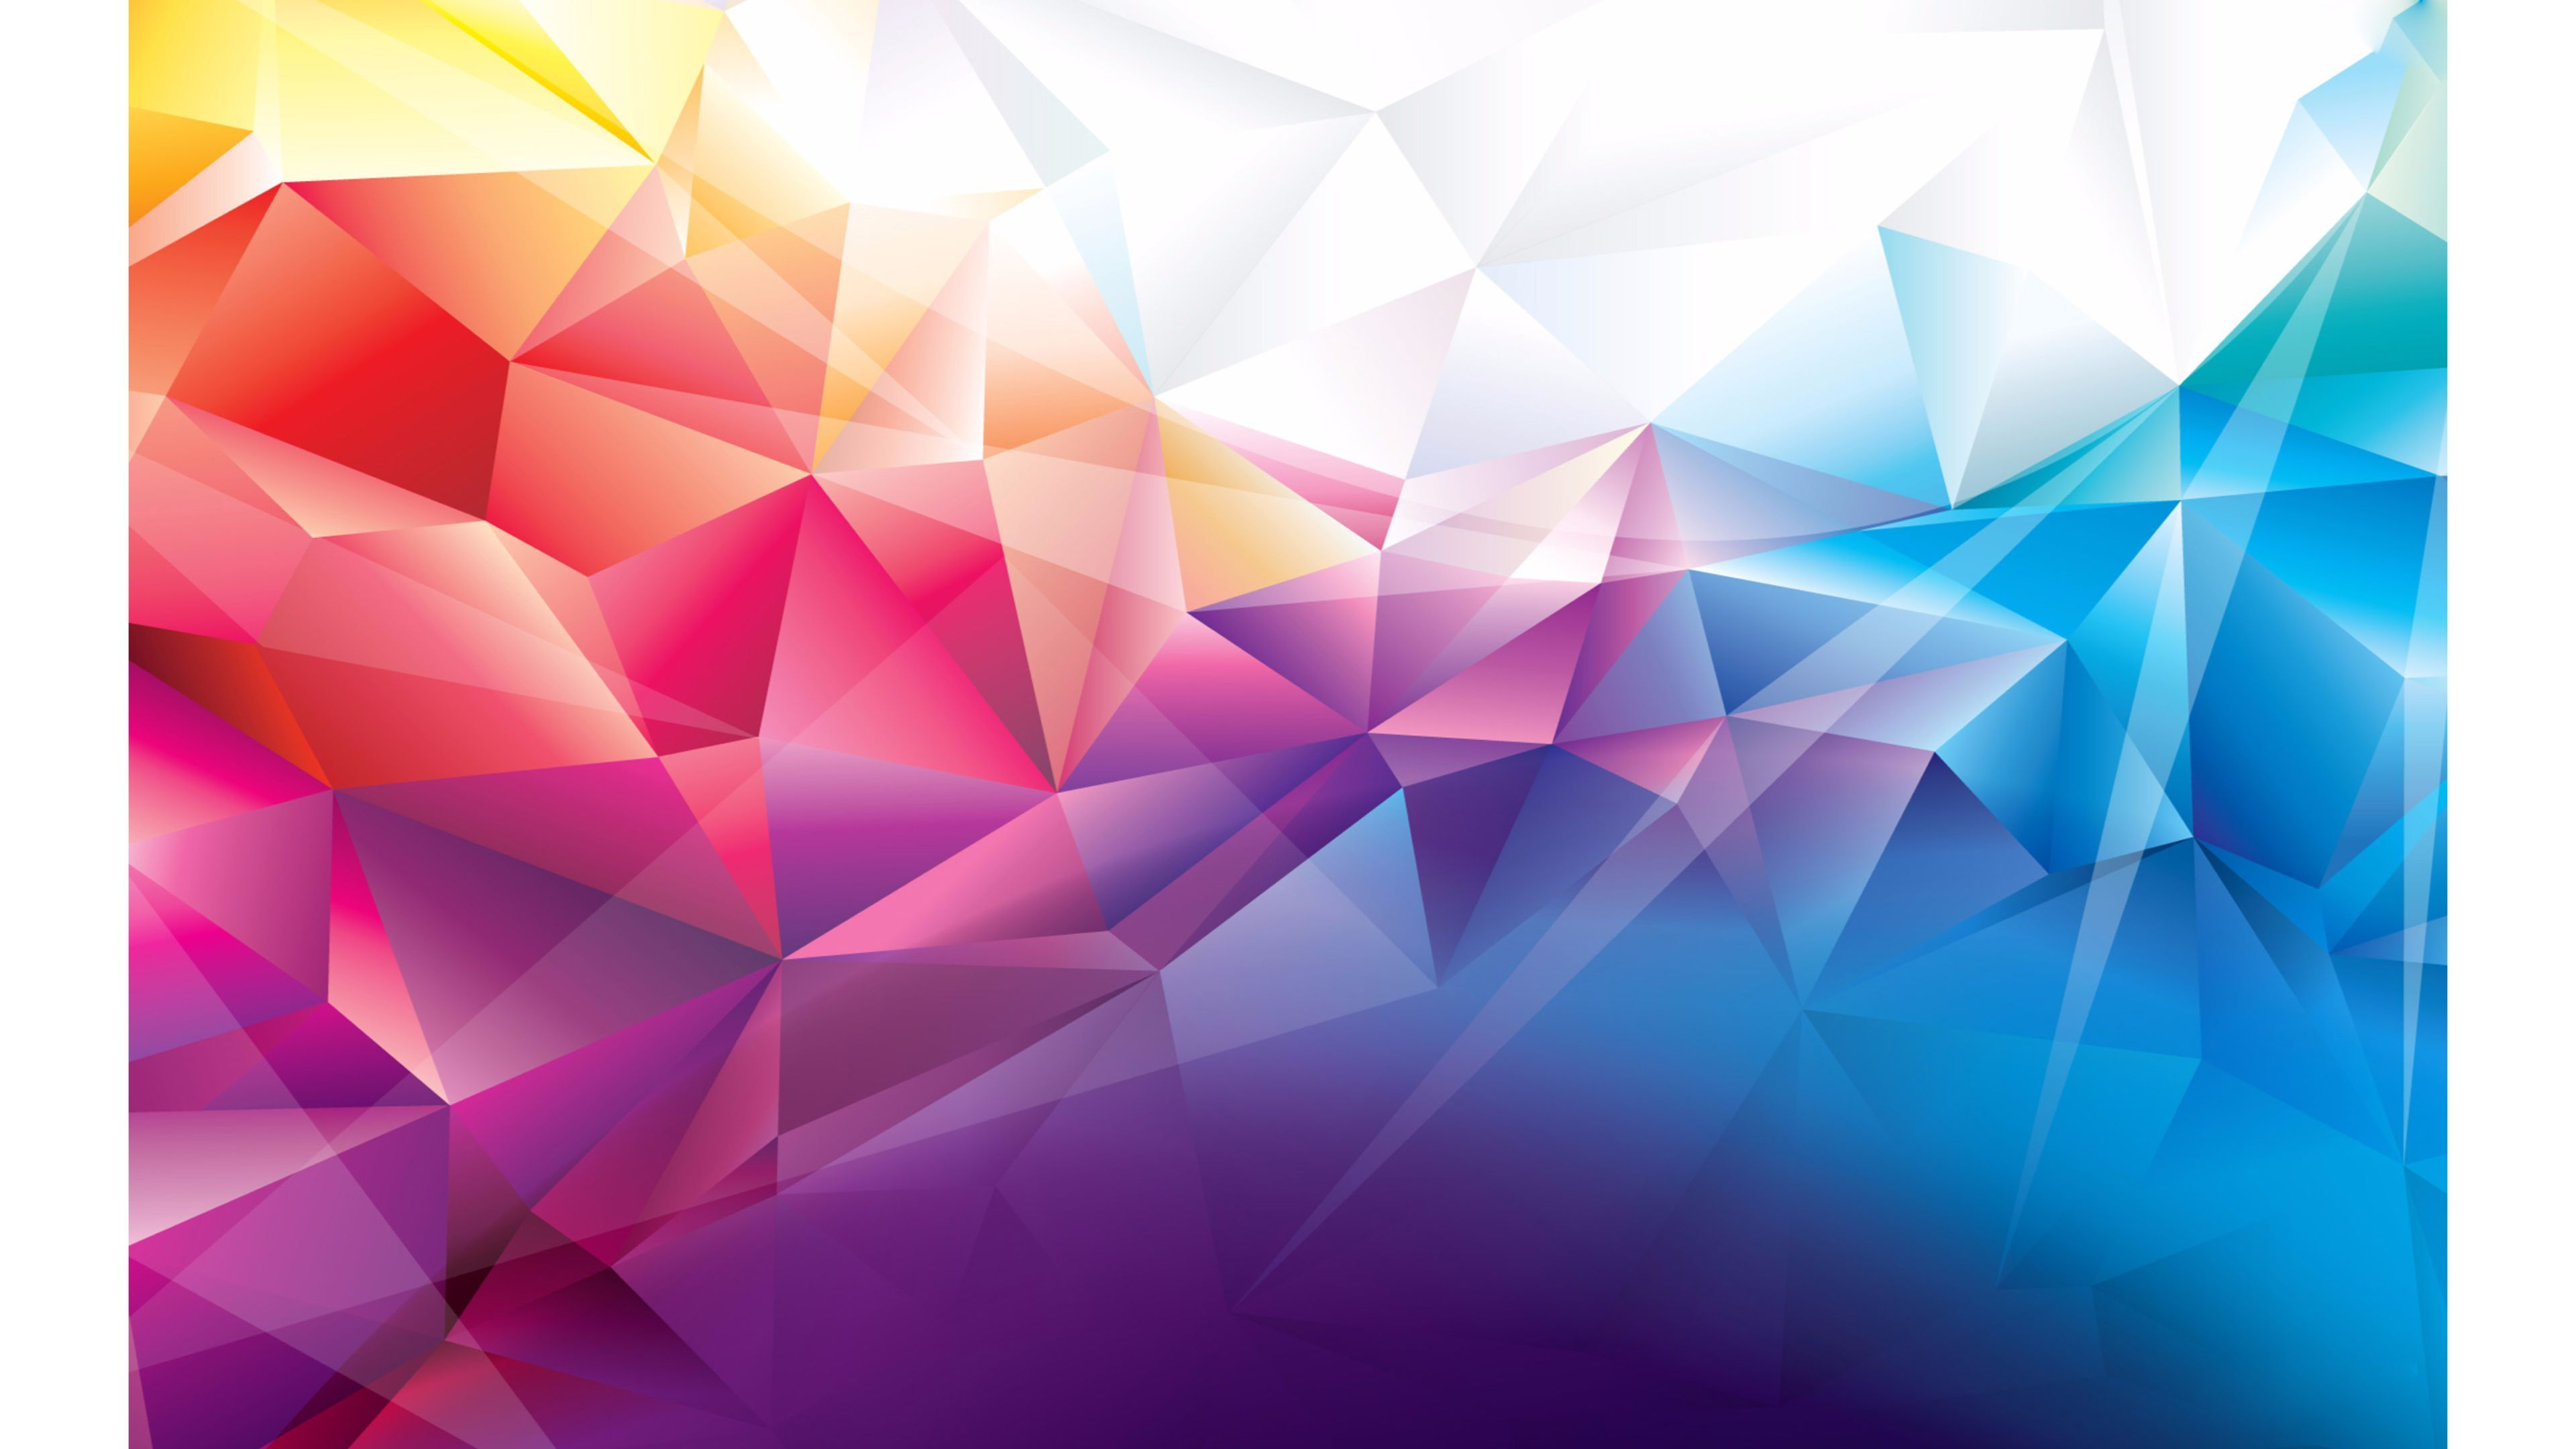 Colorful Abstract Wallpaper High Quality Resolution Is 4k Wallpaper Abstract Art Wallpaper Abstract Art Wallpaper Iphone